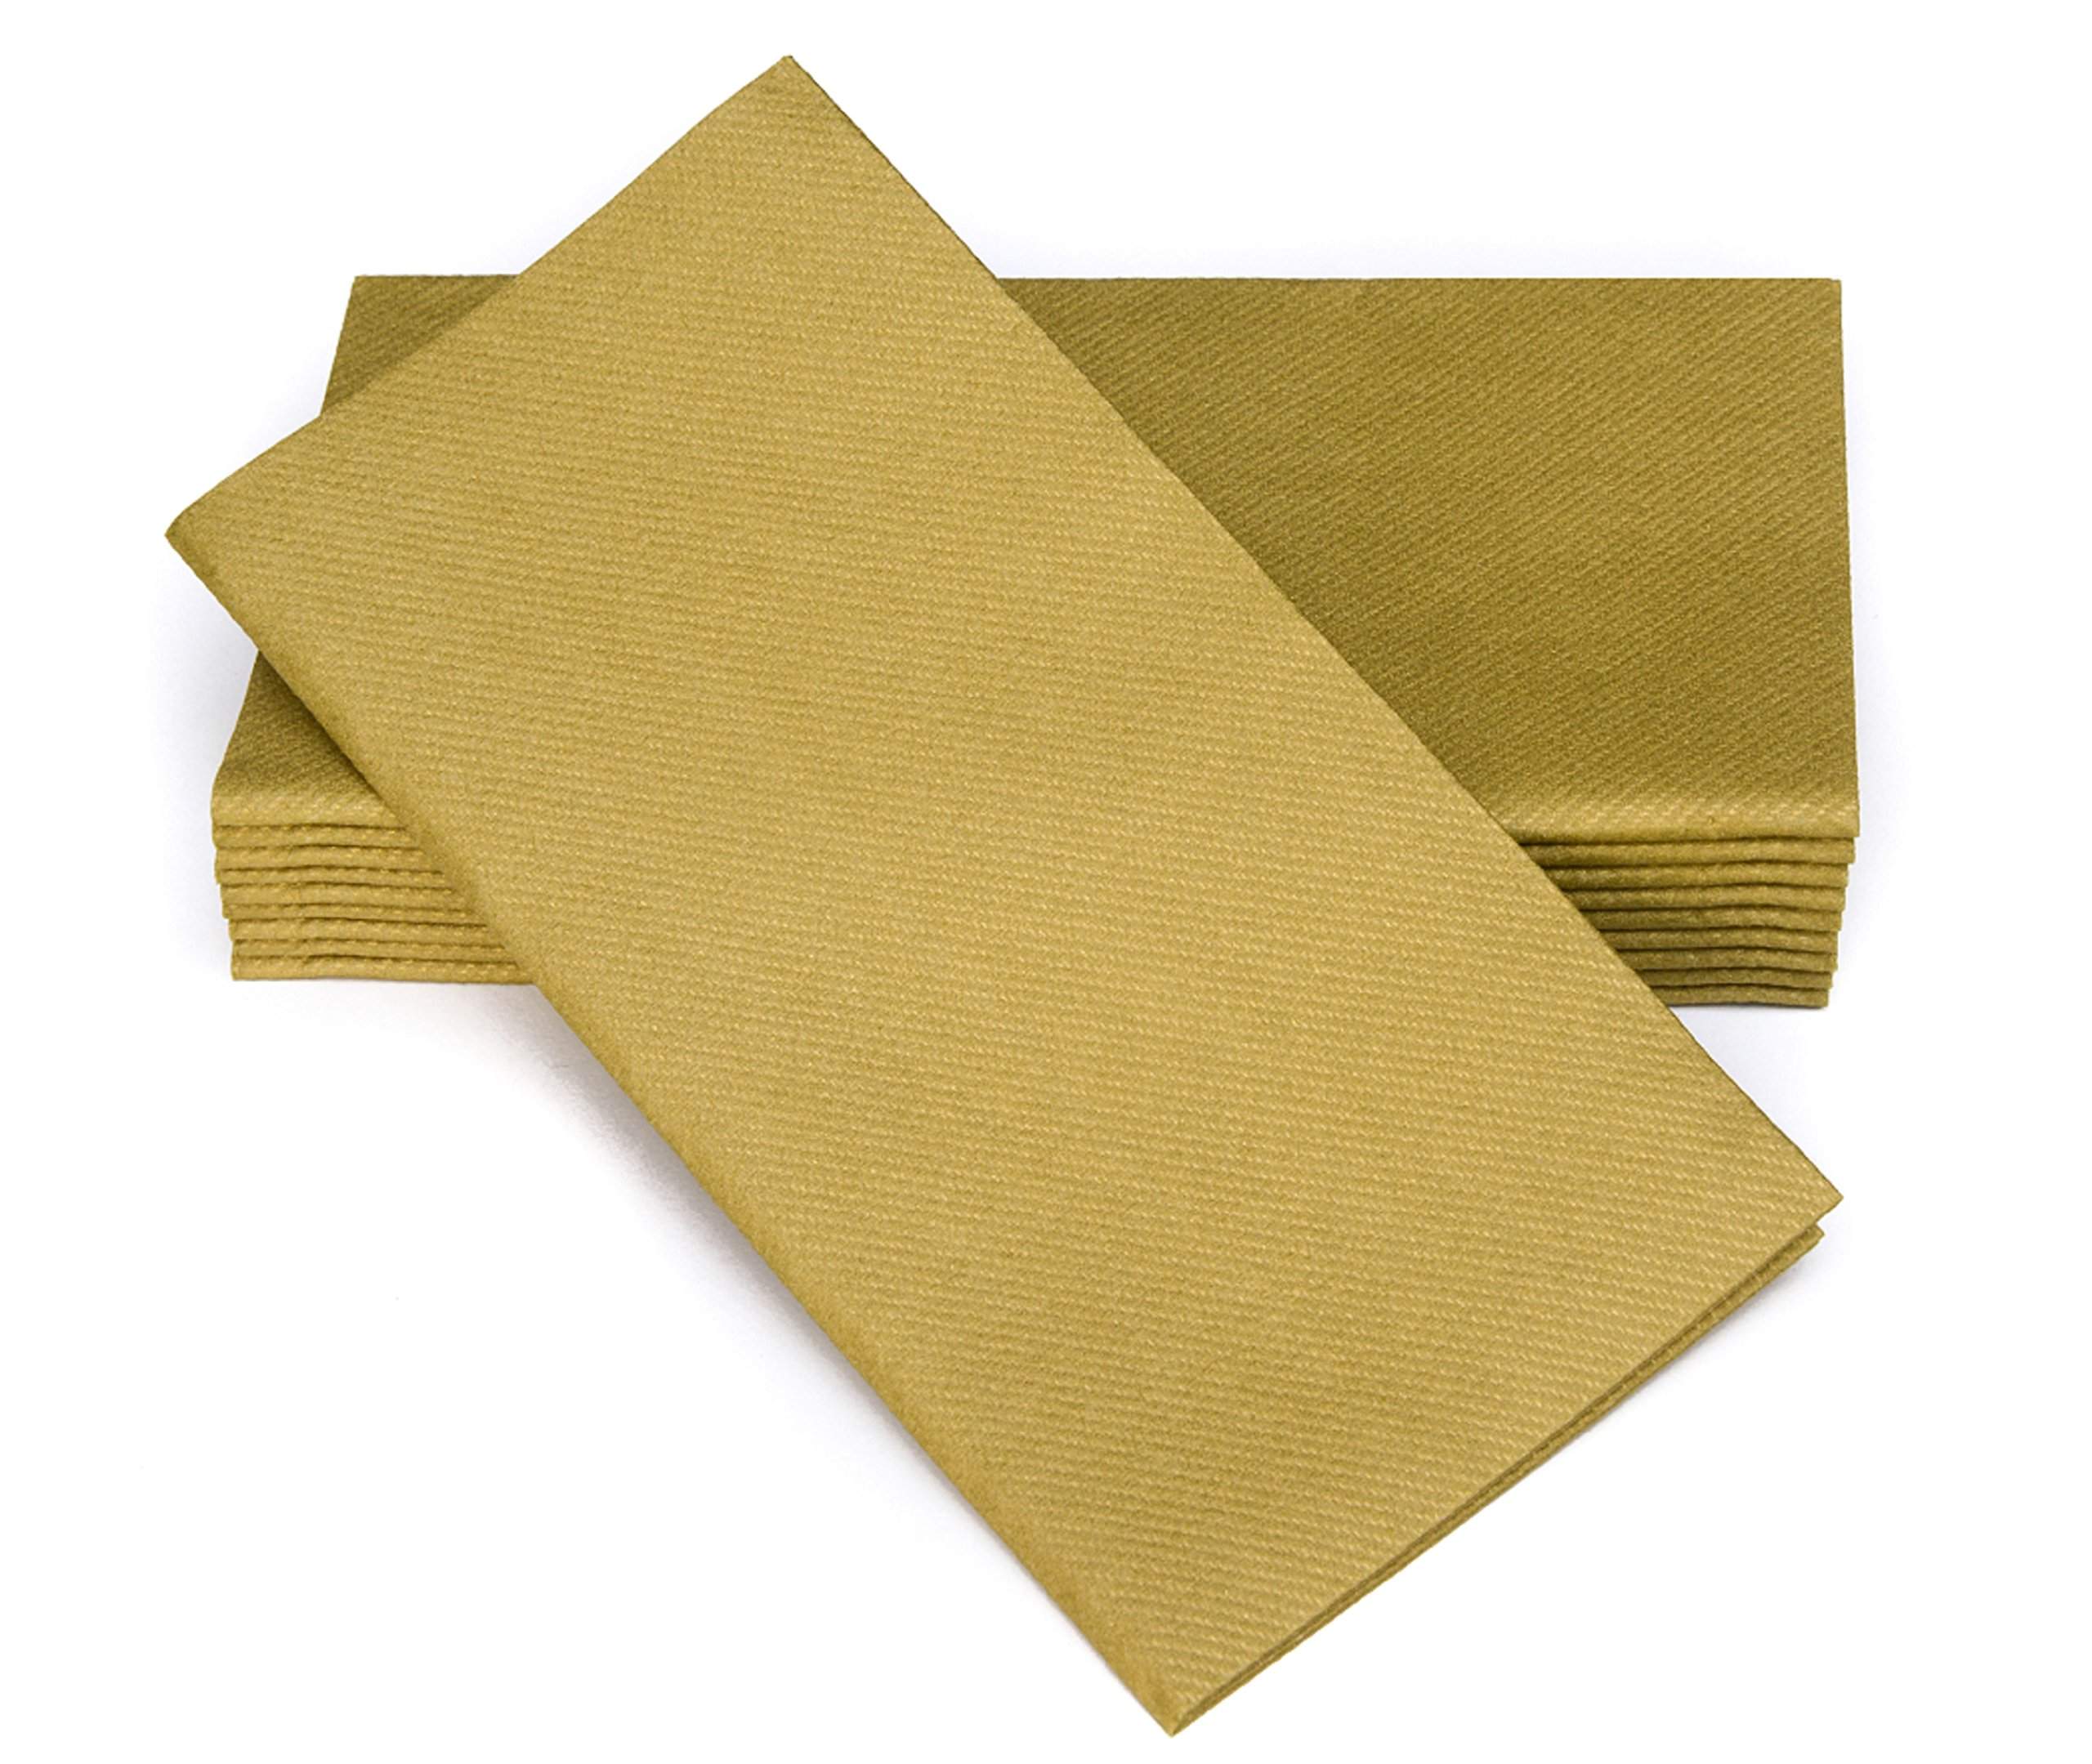 """Simulinen Colored Napkins - Decorative Cloth Like & Disposable, Dinner Napkins - Gold - Soft, Absorbent & Durable - 16""""x16"""" - Great for Any Occasion! - Box of 50"""